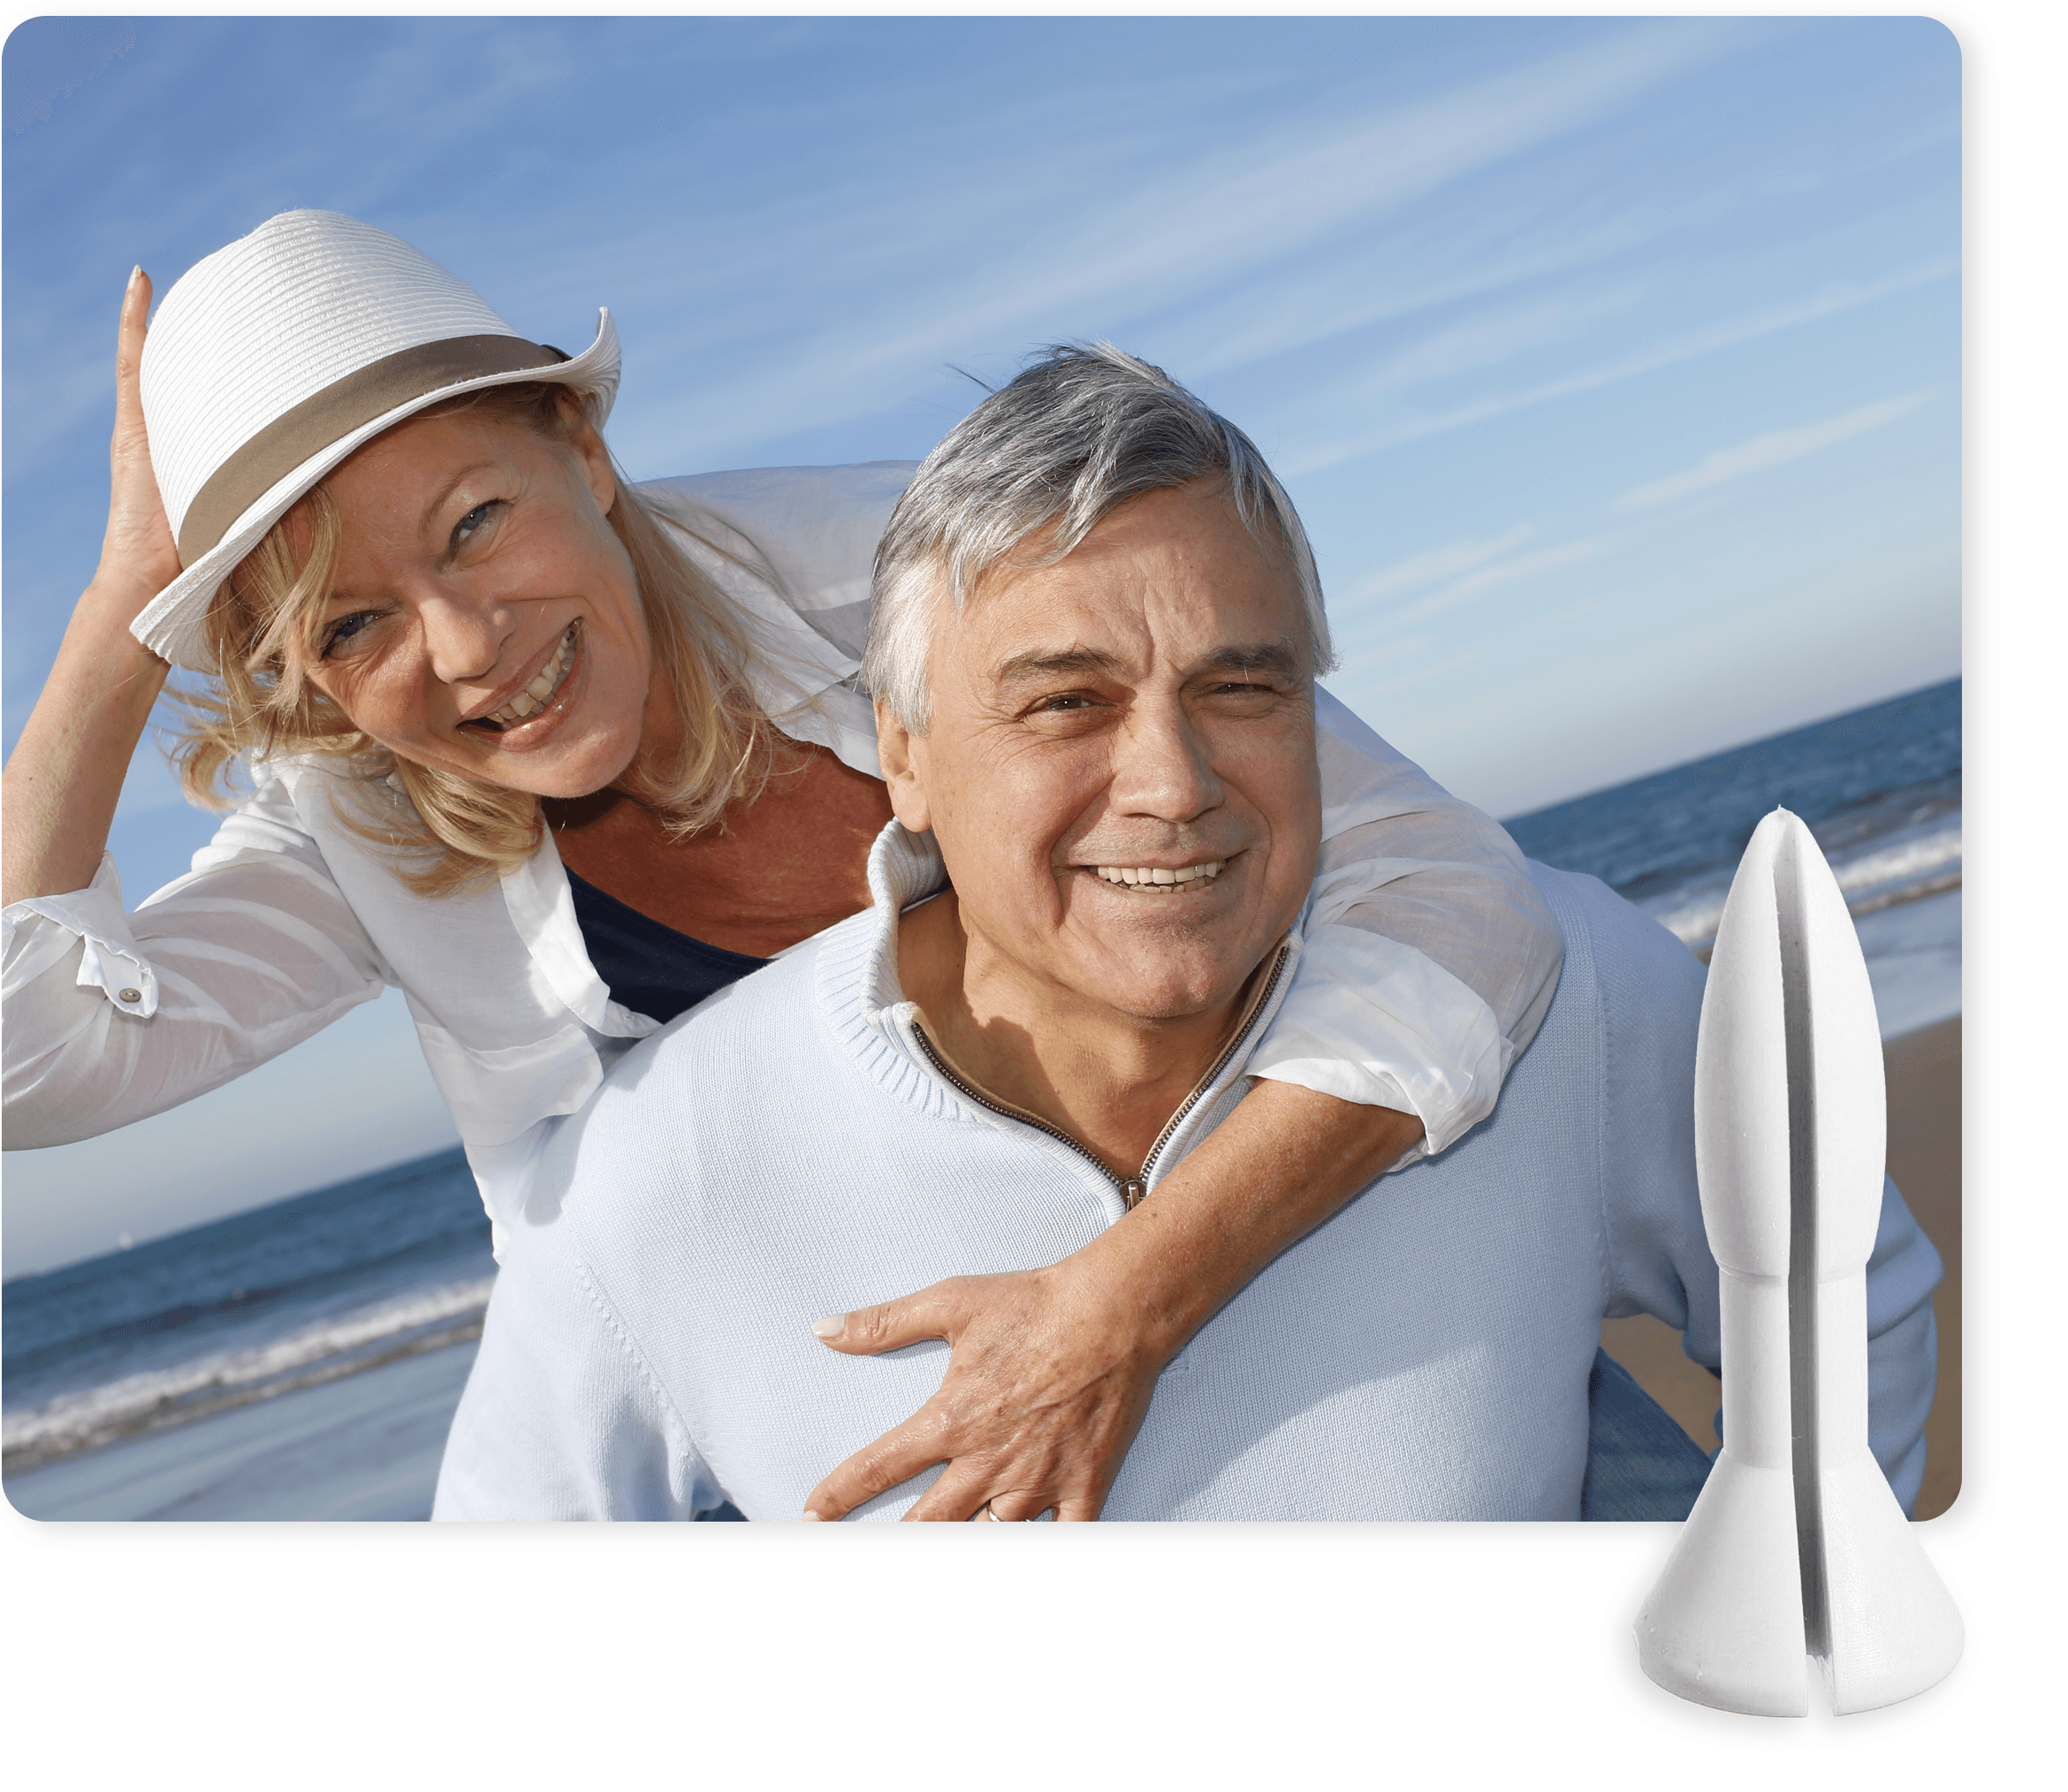 Happy couple looking at the camera on the beach with a Rectal Rocket suppository.